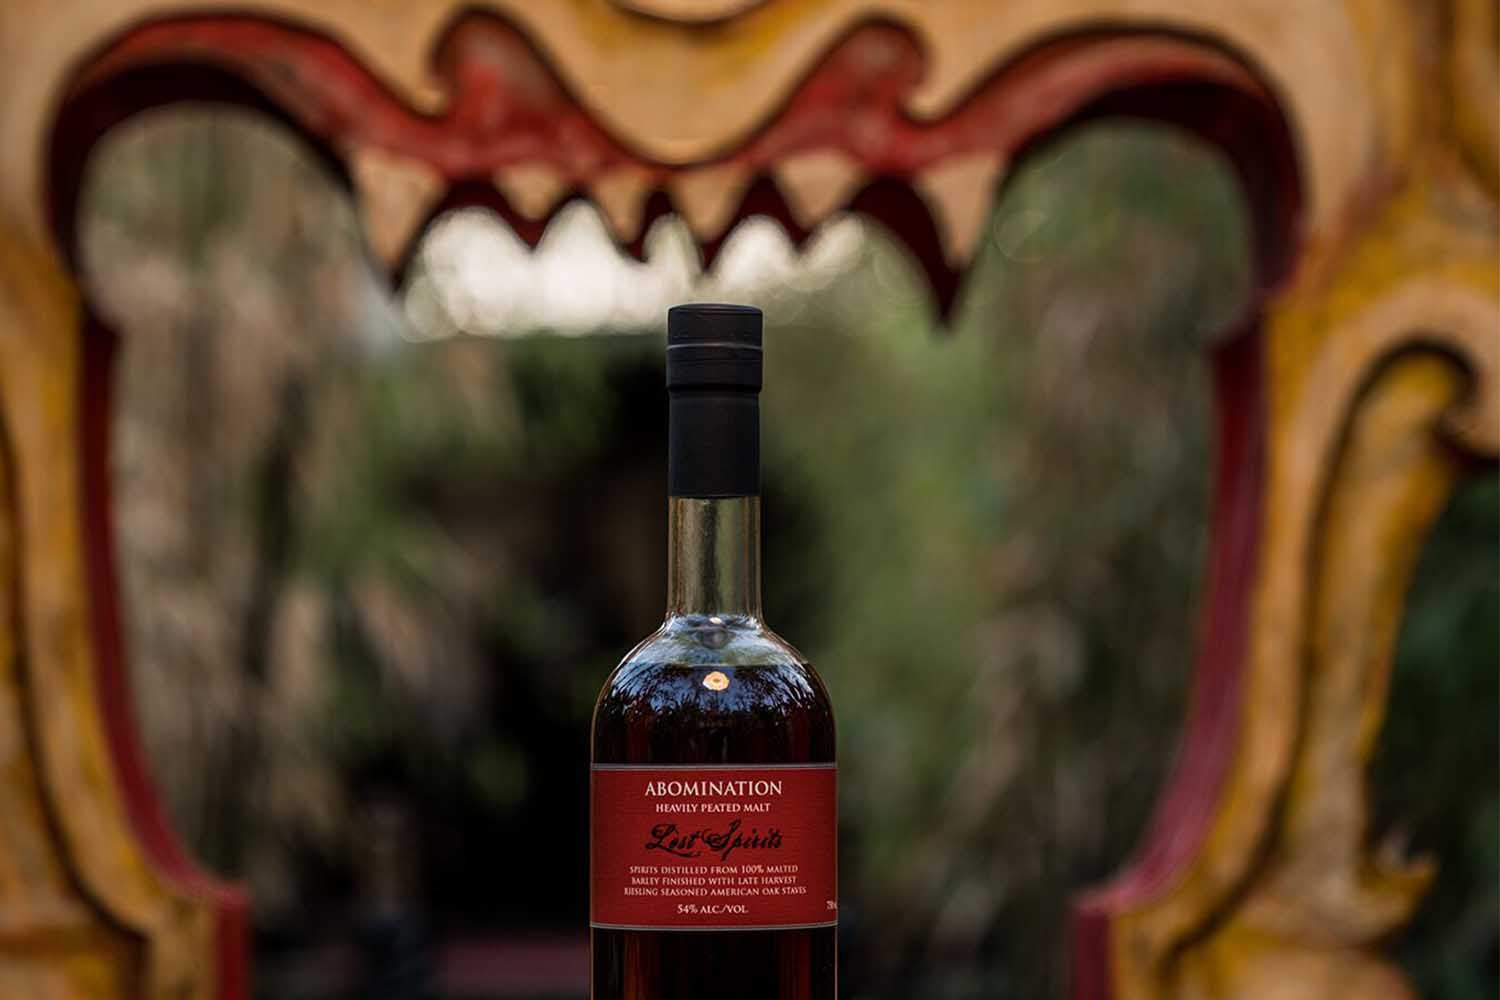 Review: Reborn After a Fire, LA's Lost Spirits Distillery Tour Still Delivers